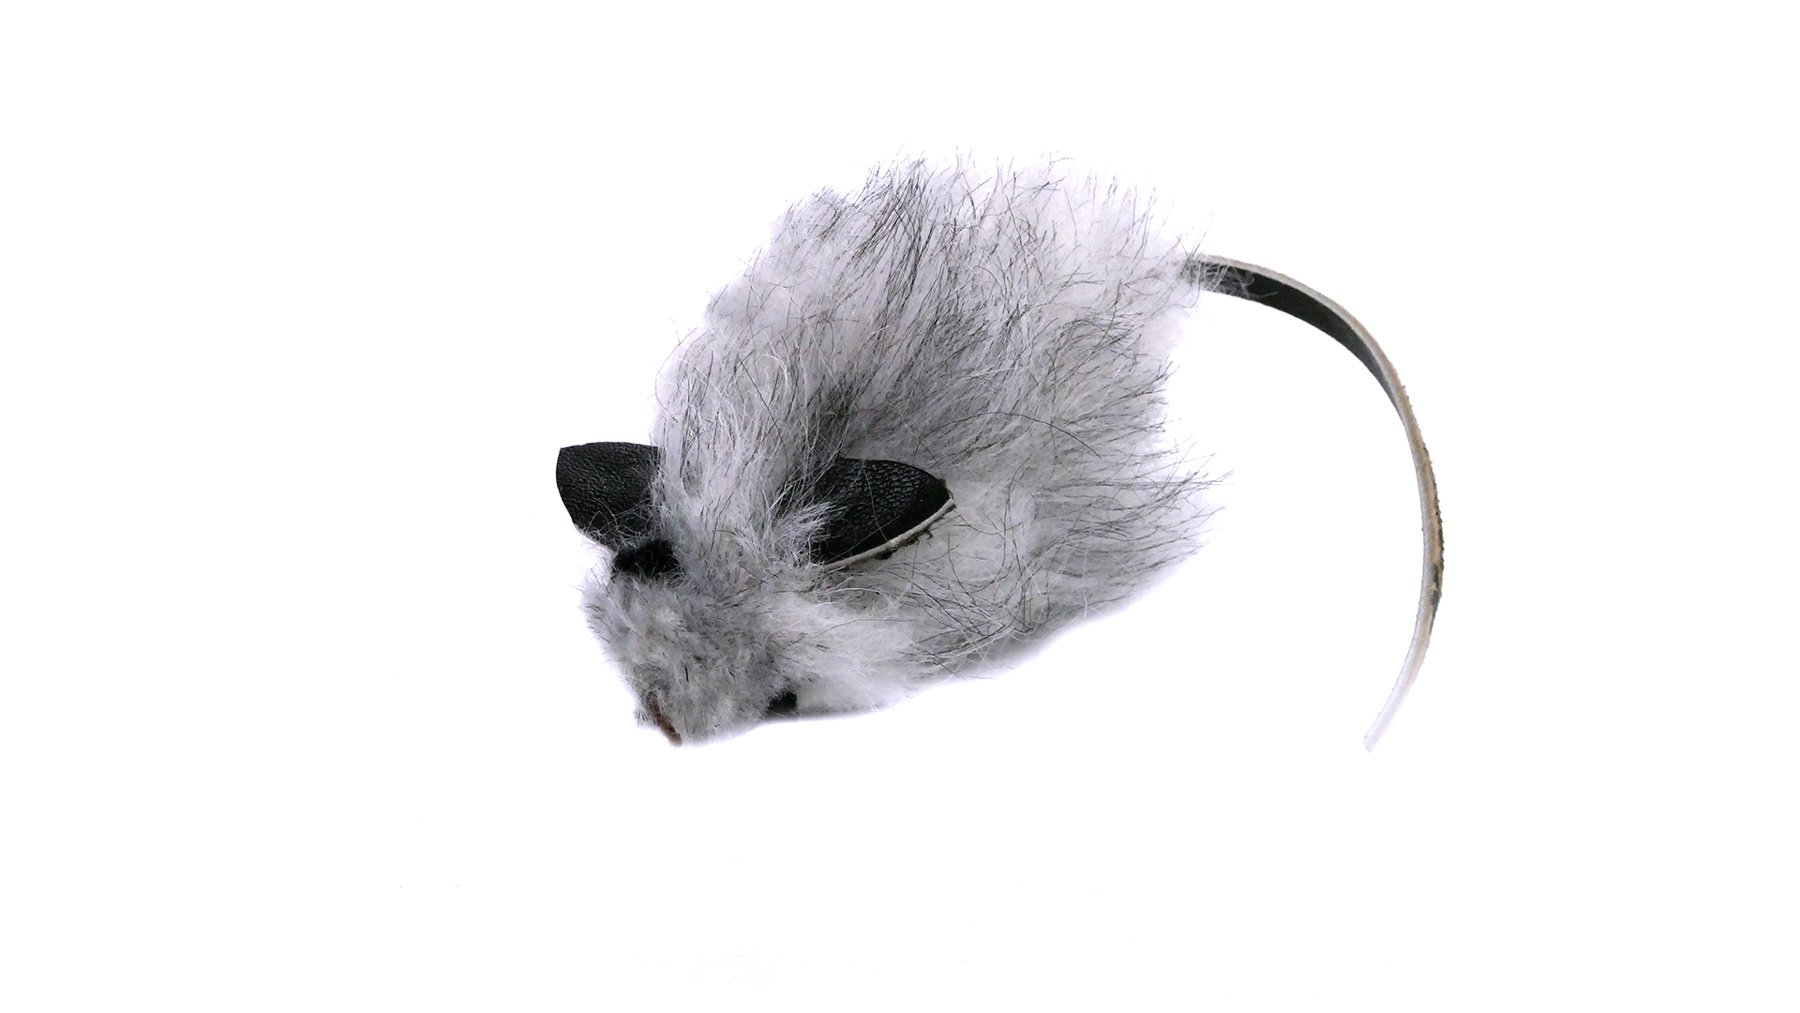 Purrs Fluffy mouse